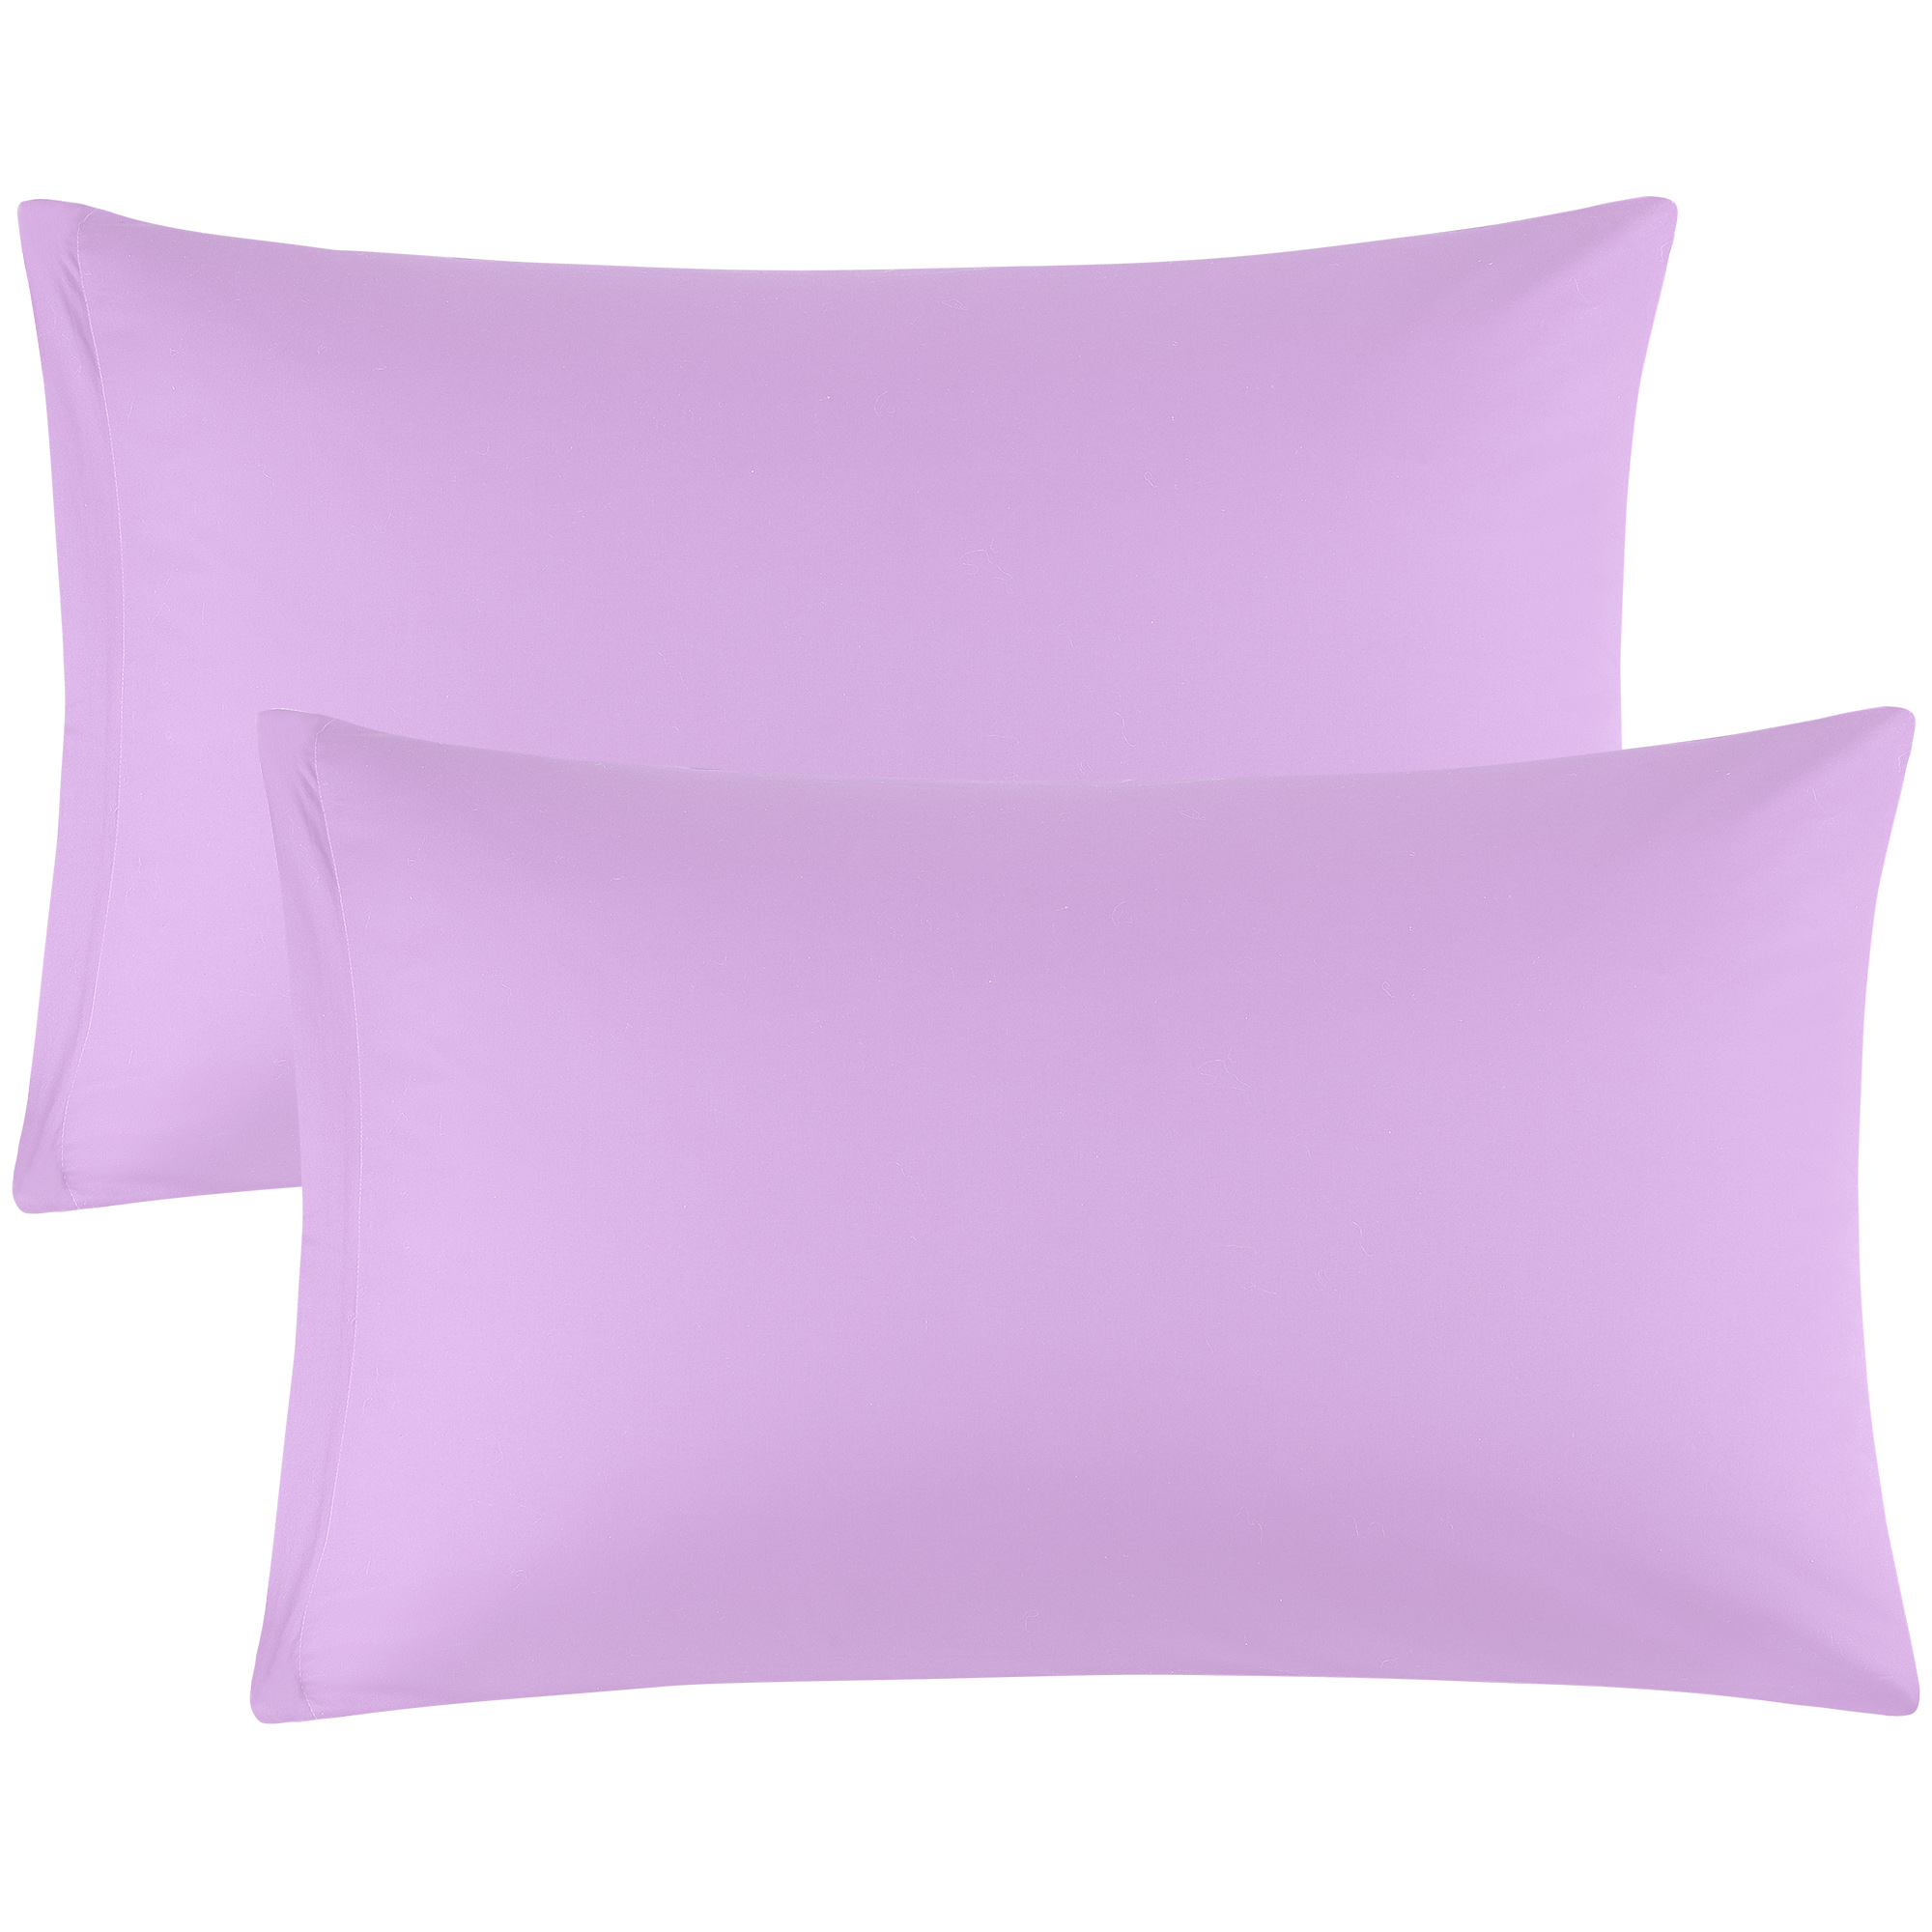 Egyptian Cotton Pillowcases Zippered Covers Light Purple 20 x 36 Inch 2-Pack